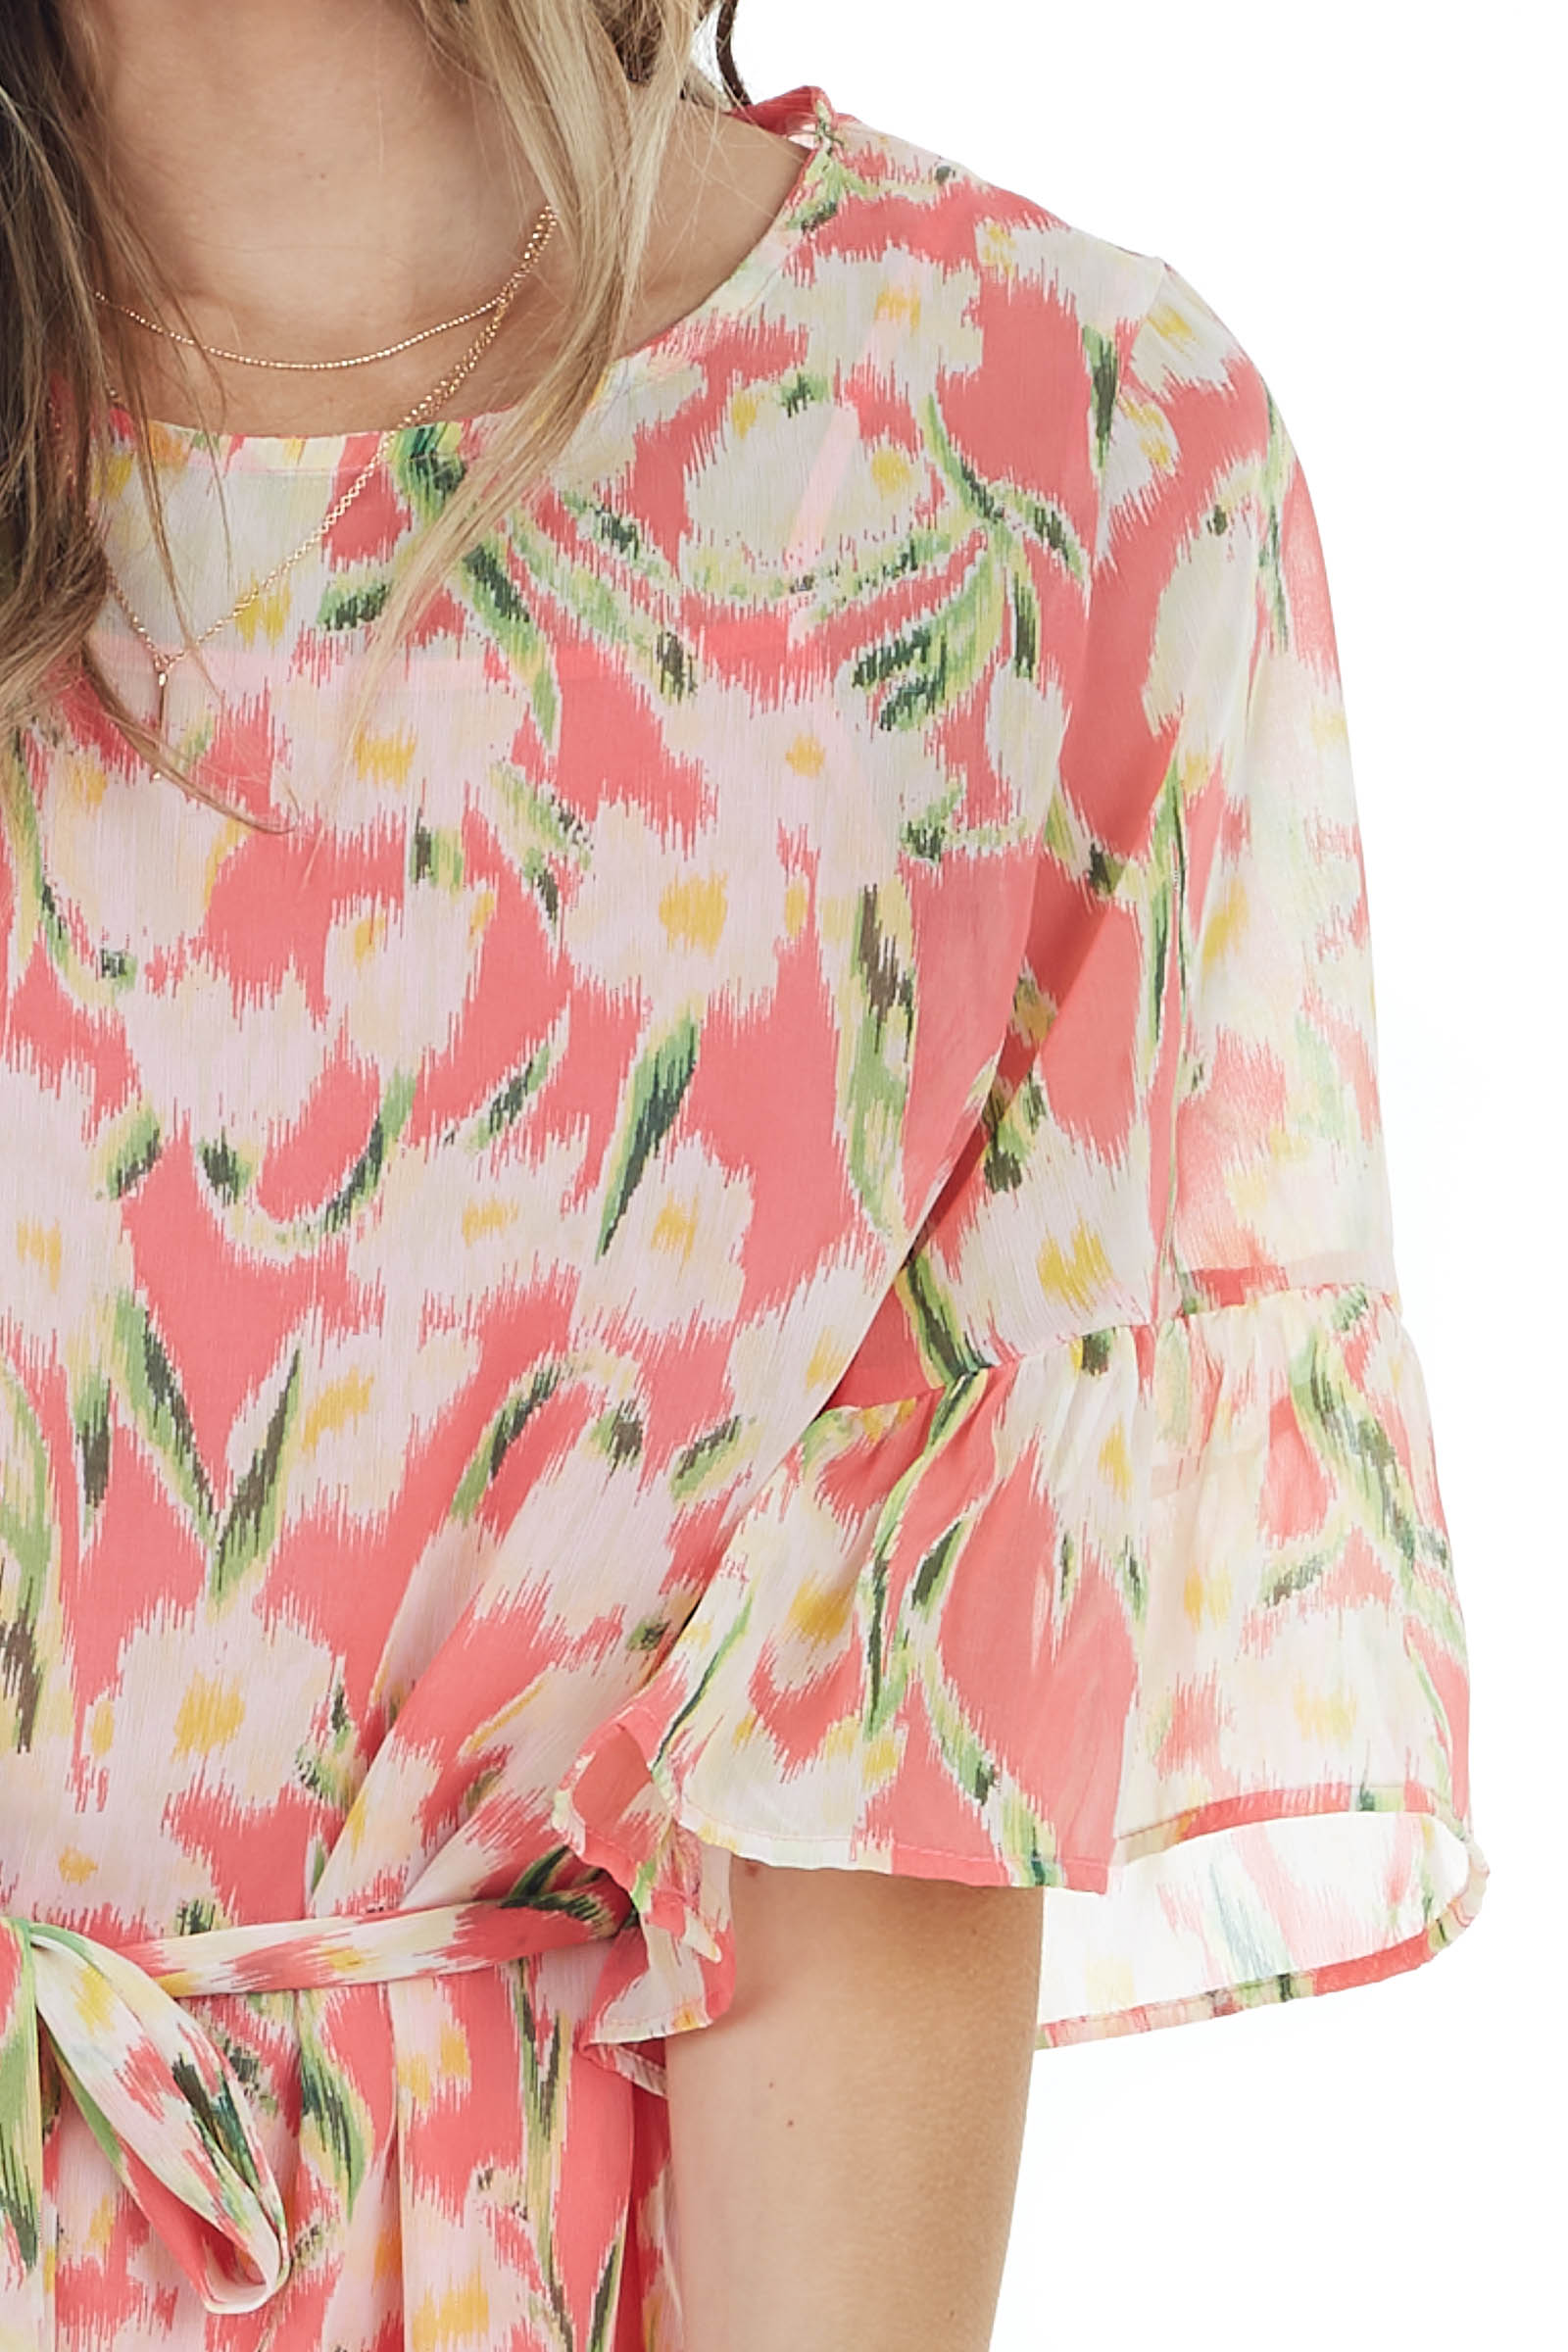 Coral Floral Print Chiffon Top with Front Tie and Ruffles